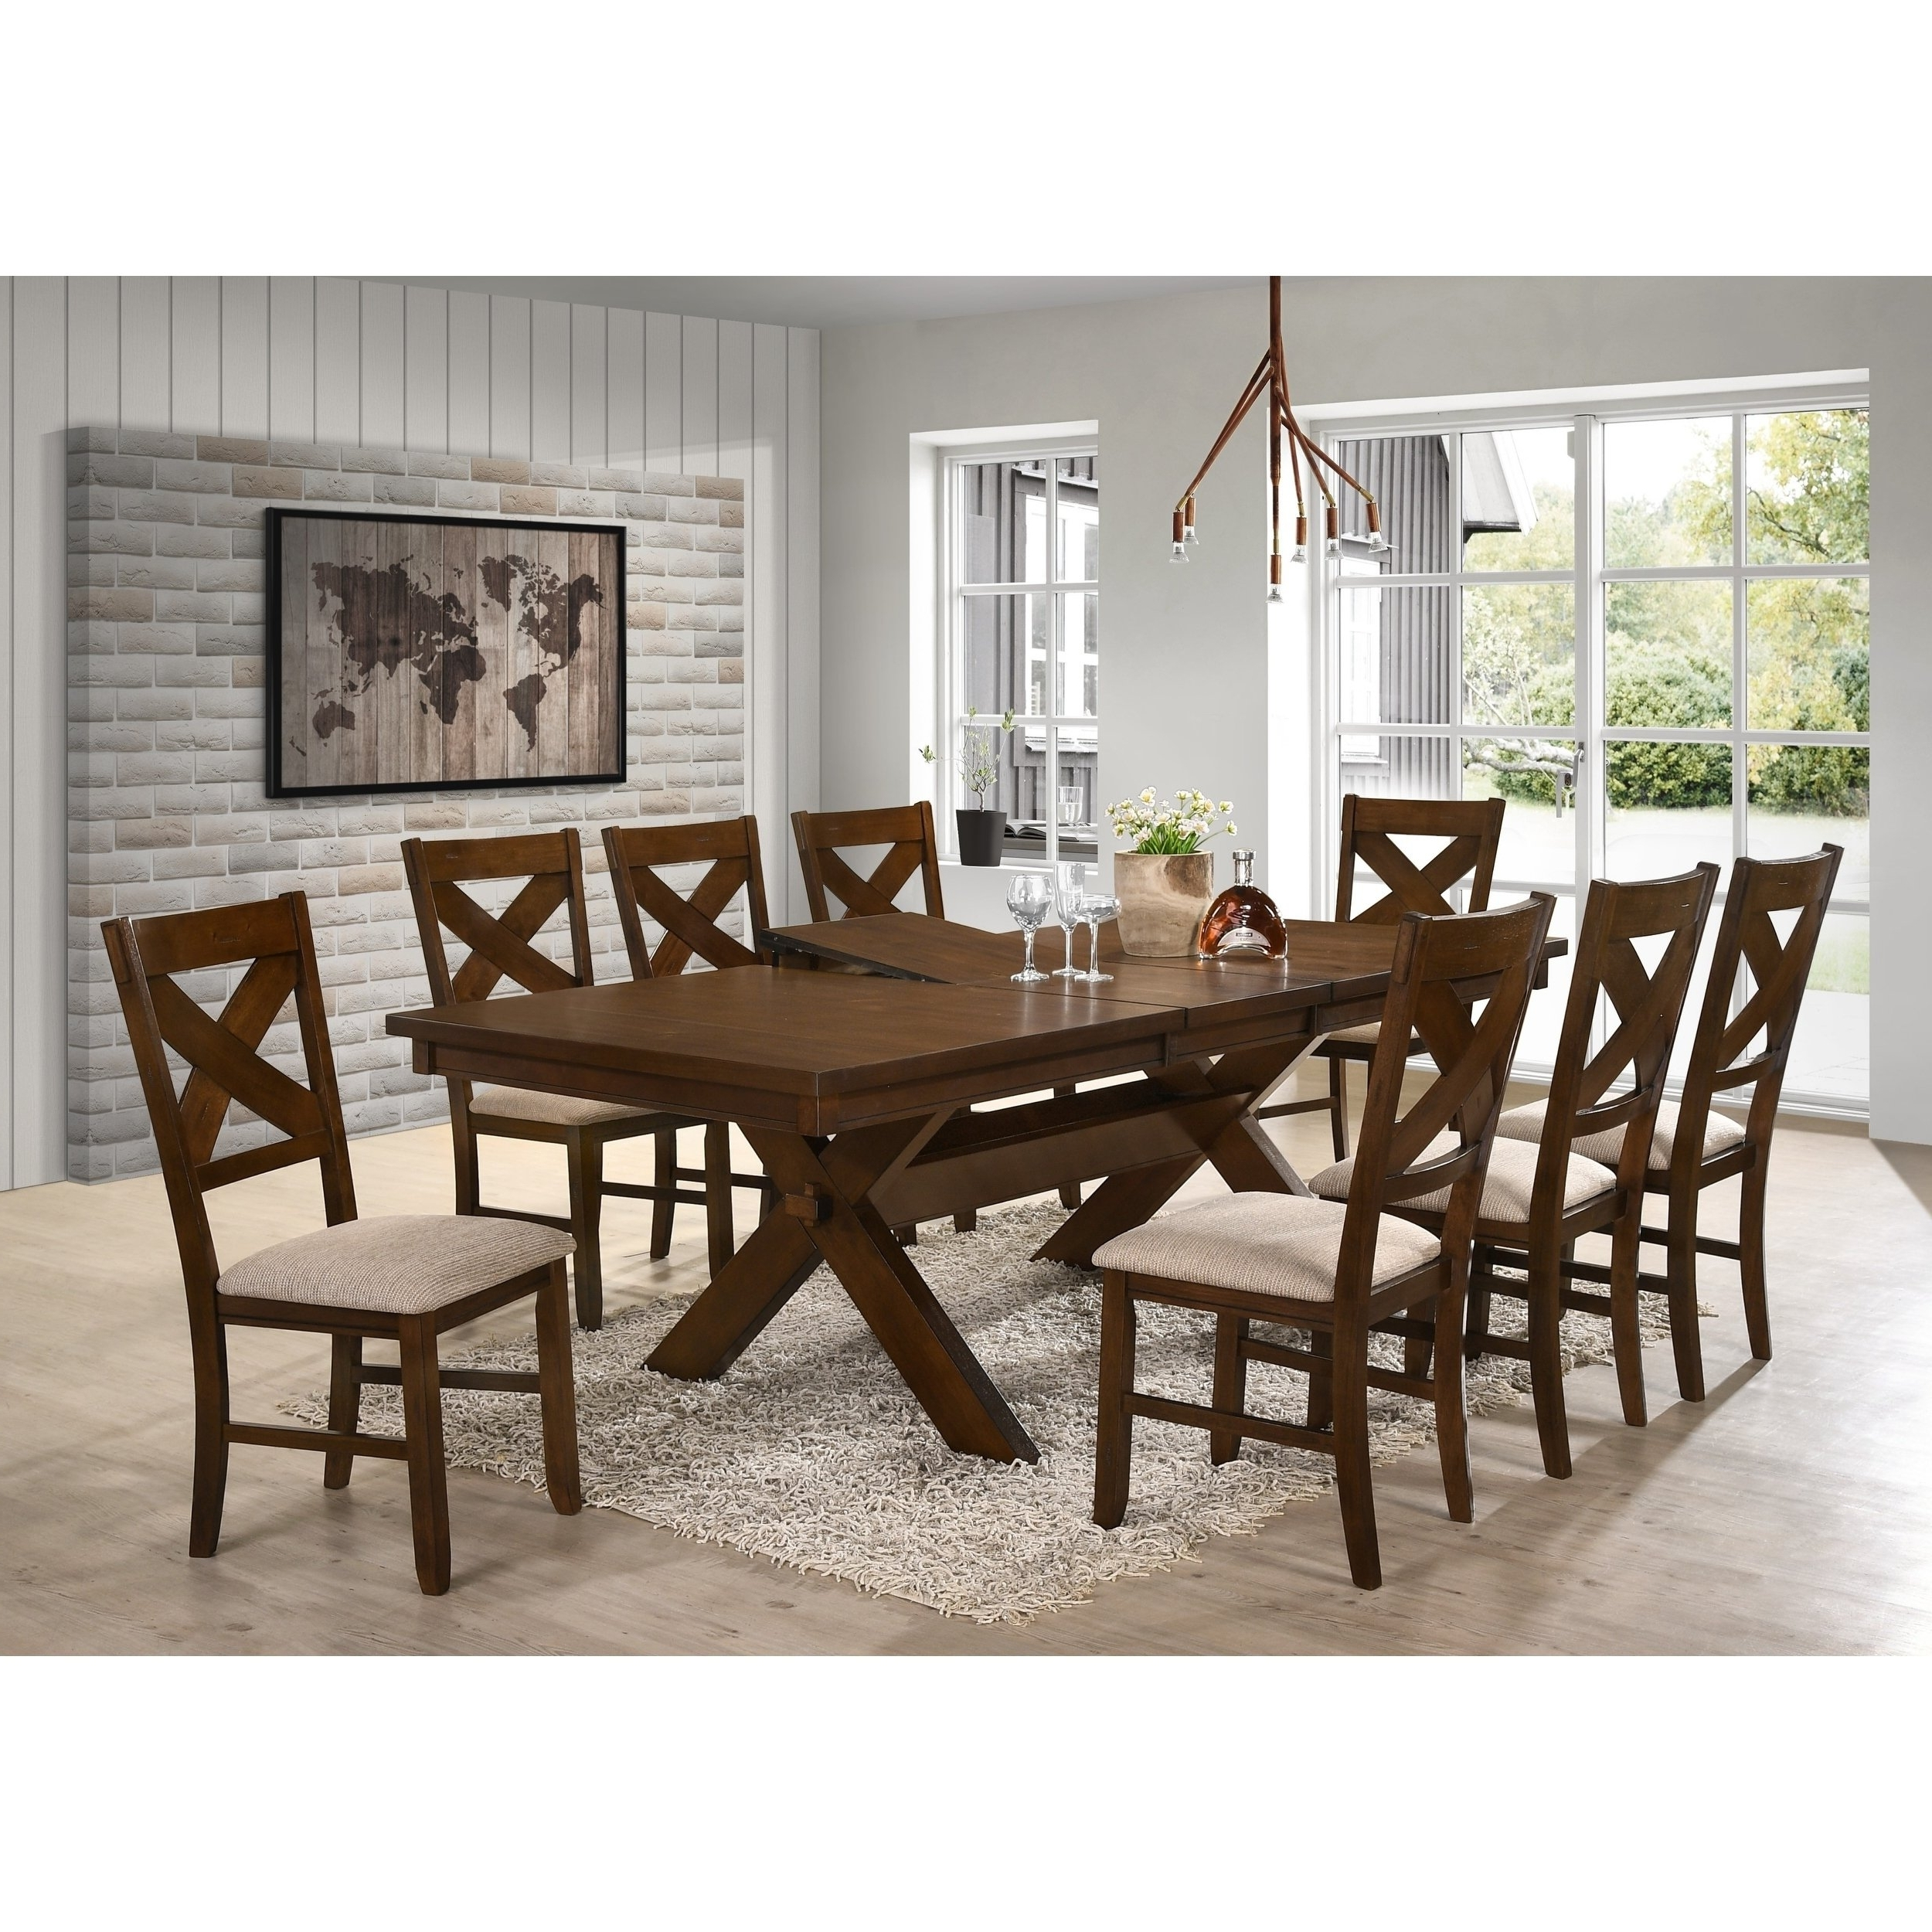 Dining Tables And 8 Chairs regarding Popular Shop 9 Piece Solid Wood Dining Set With Table And 8 Chairs - Free